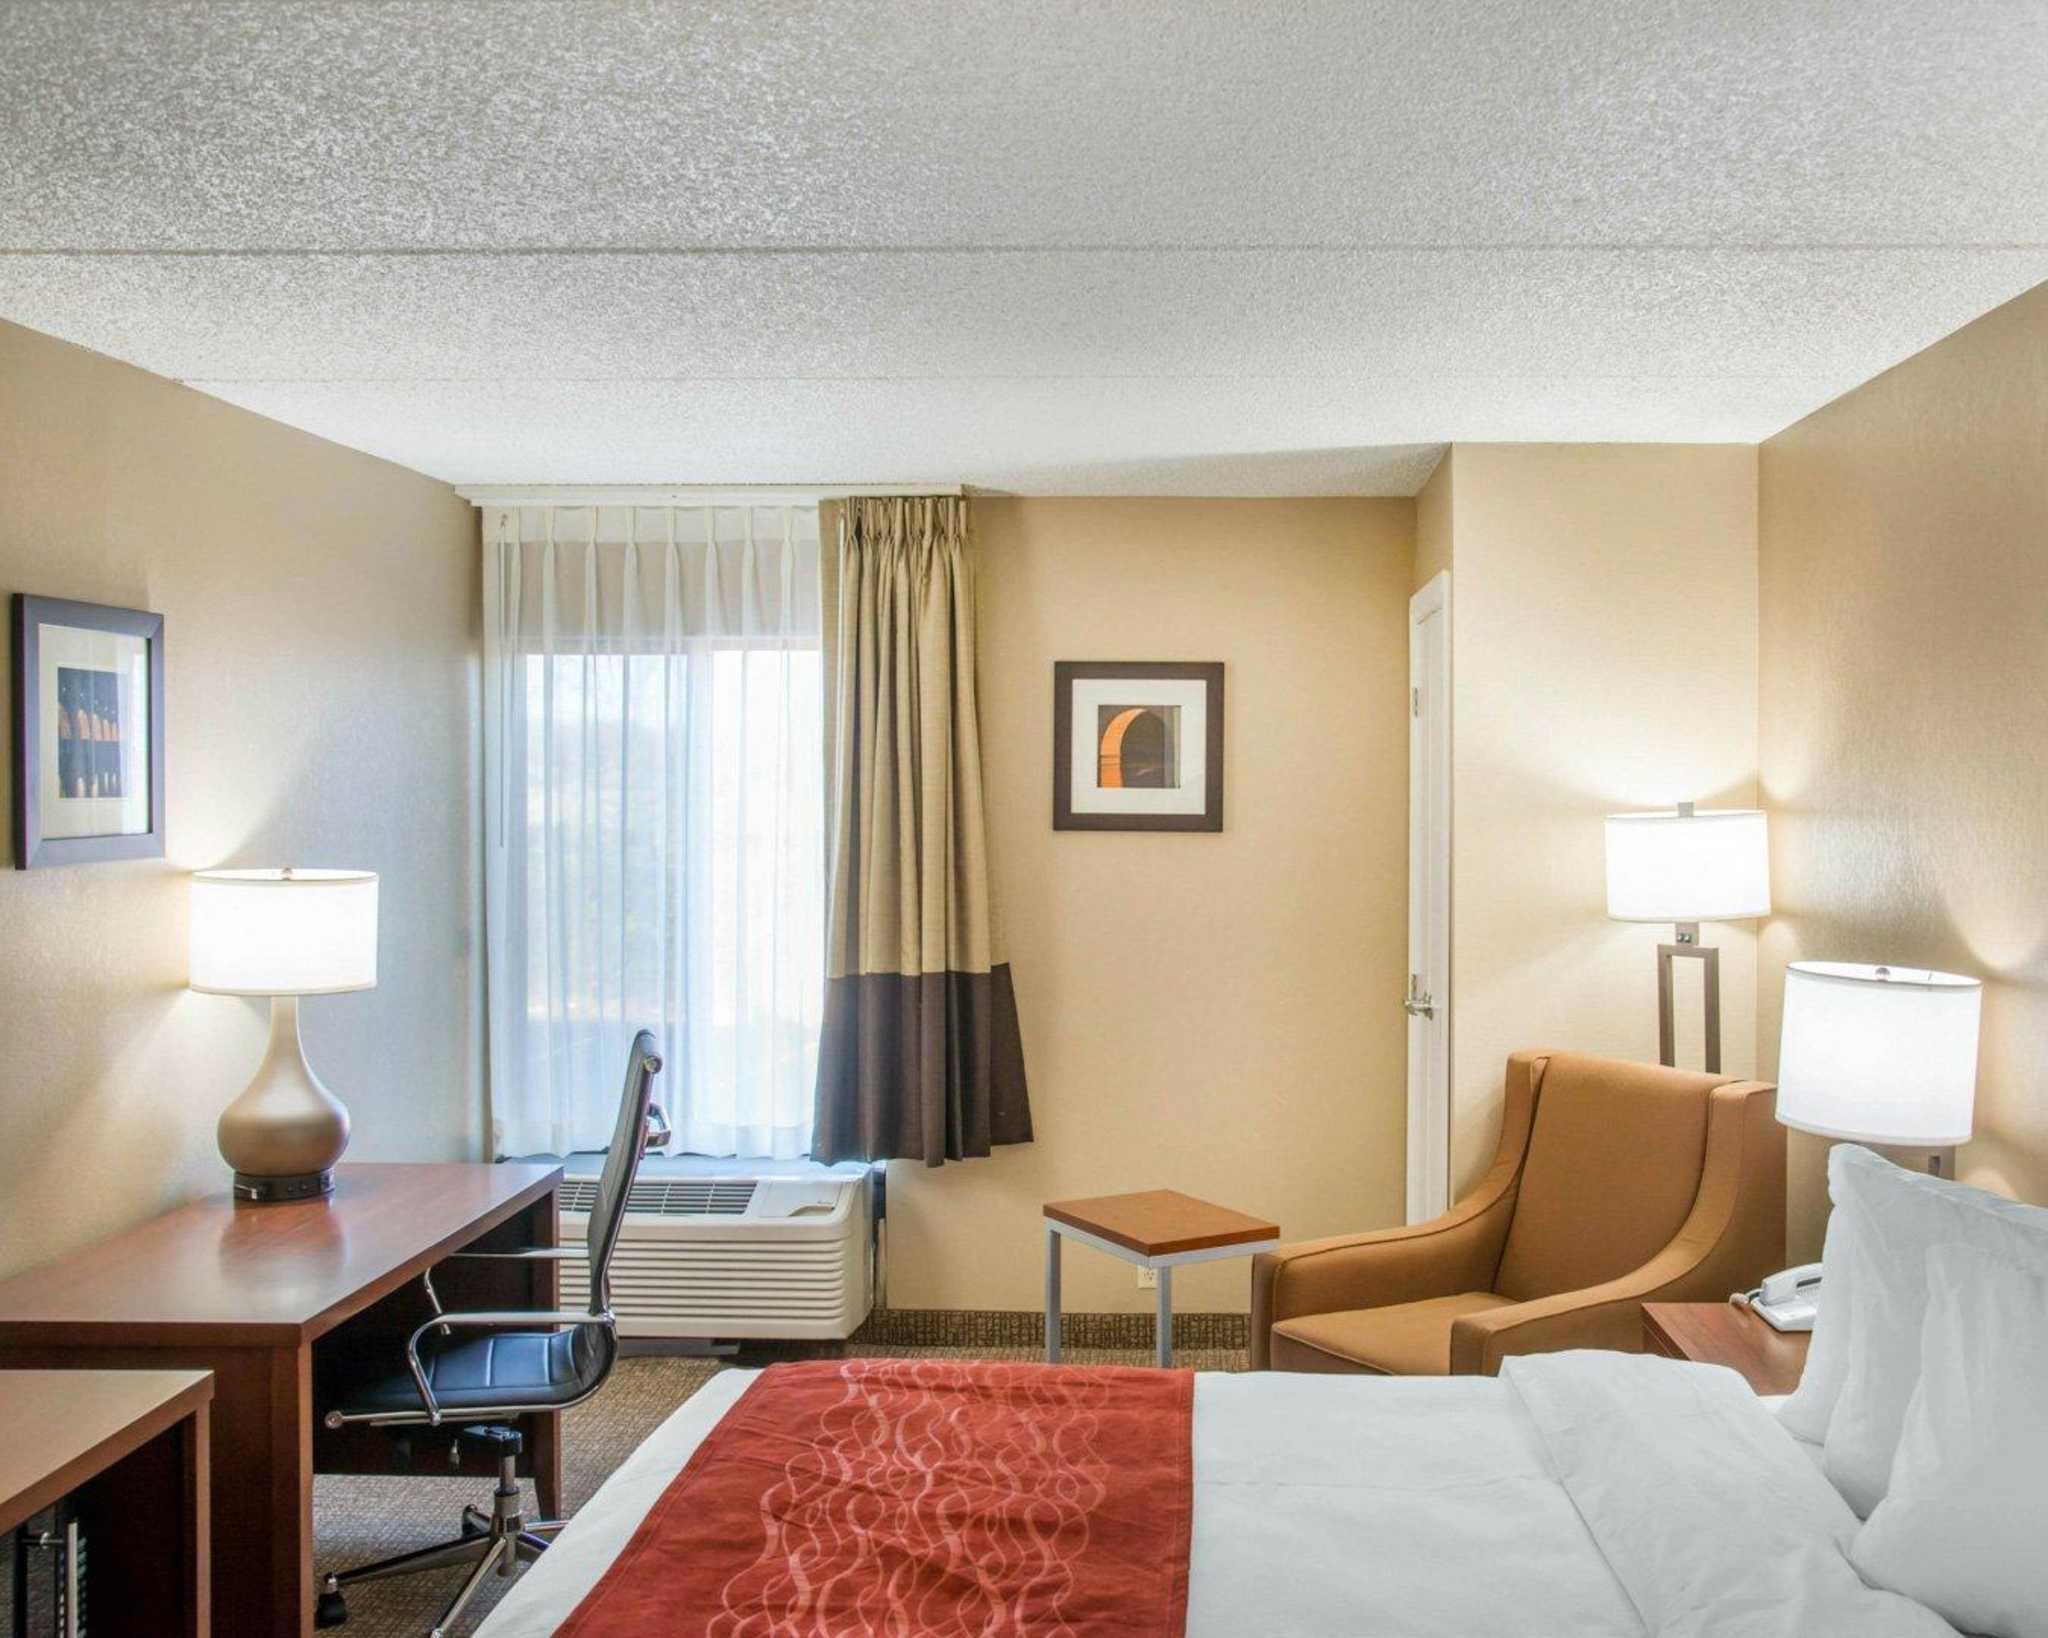 Comfort Inn Eden Prairie - Minneapolis image 7